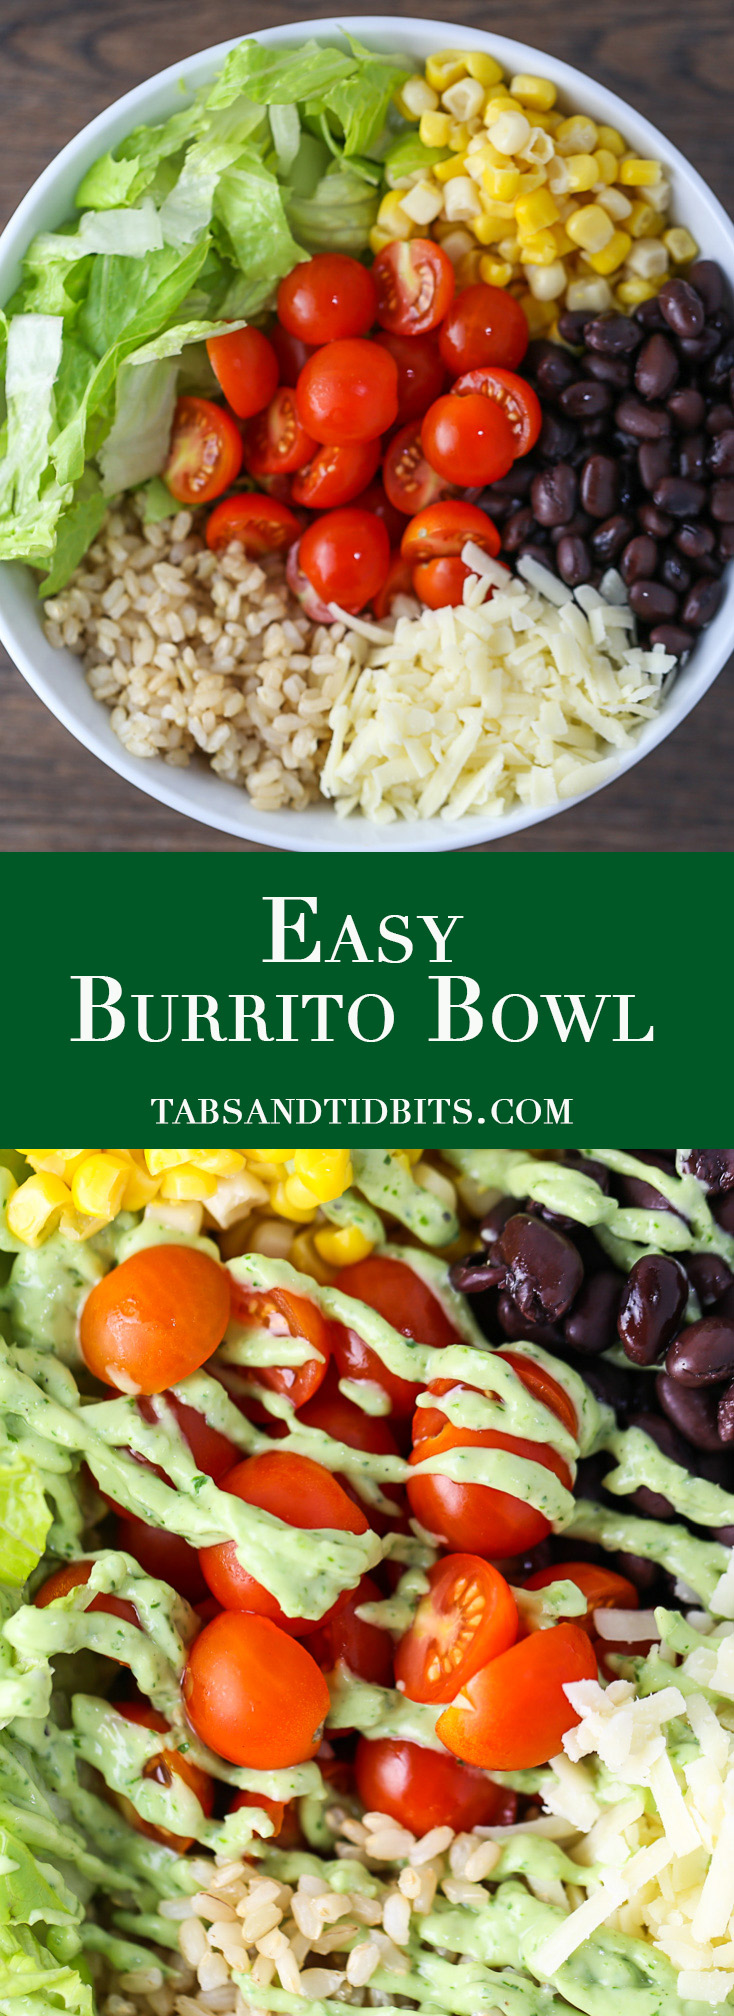 Easy Burrito Bowl - A burrito bowl full and simple and easy ingredients with Spicy Avocado Dressing to take it up a notch!